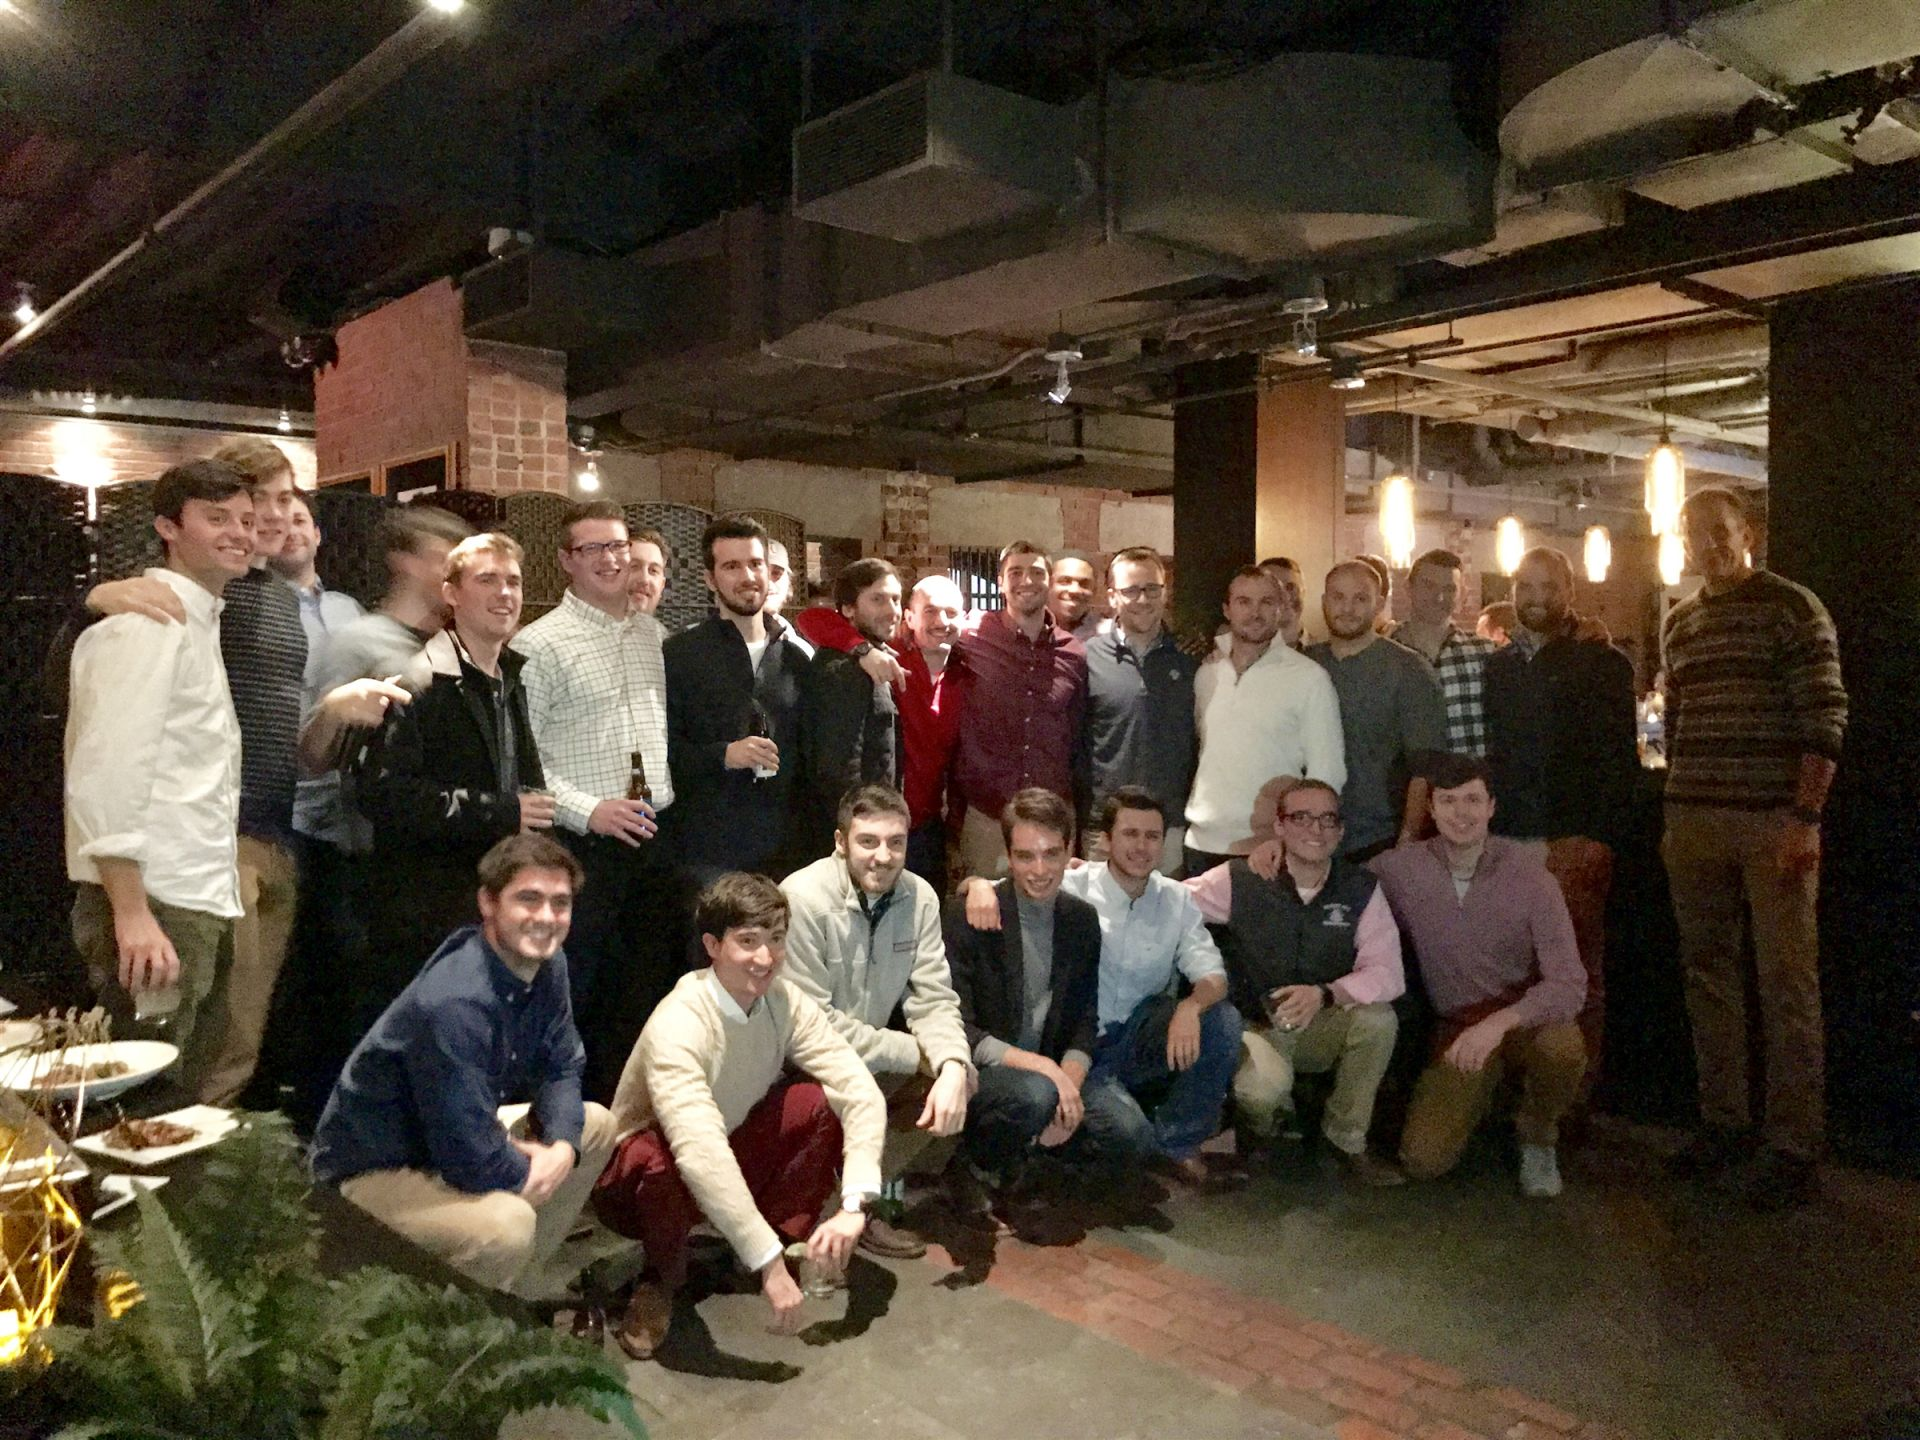 Recent Alumni Gathering at Alibi Bar & Lounge in Boston on November 23, 2018.